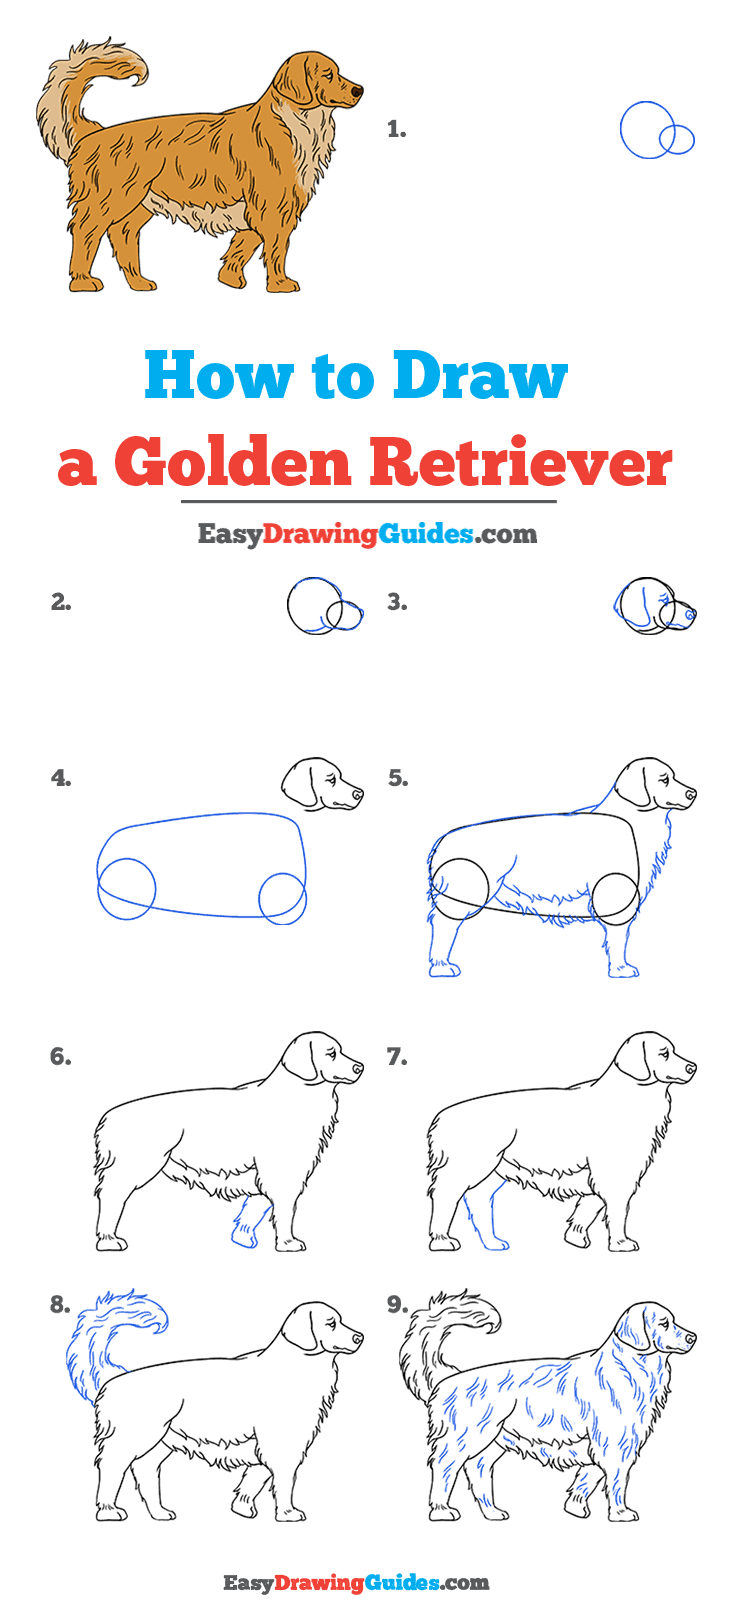 How to Draw a Golden Retriever Step by Step Tutorial Image